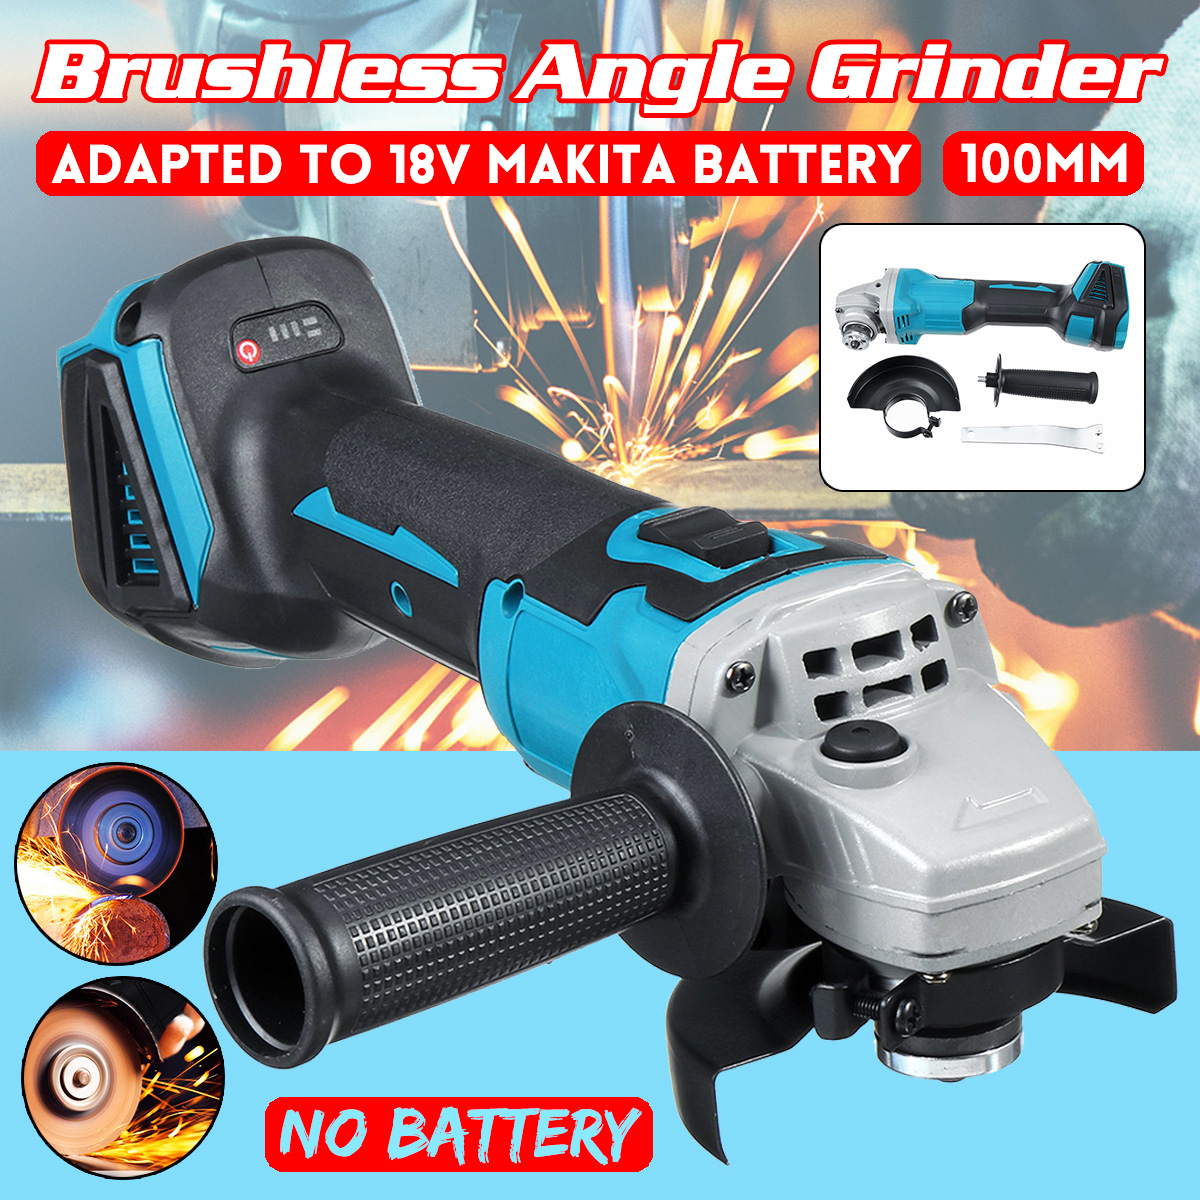 Brushless Electric Angle Grinder 100mm Rechargeable Grinding Machine Woodworking Metal Cutting Power Tool For 18V Makita Battery